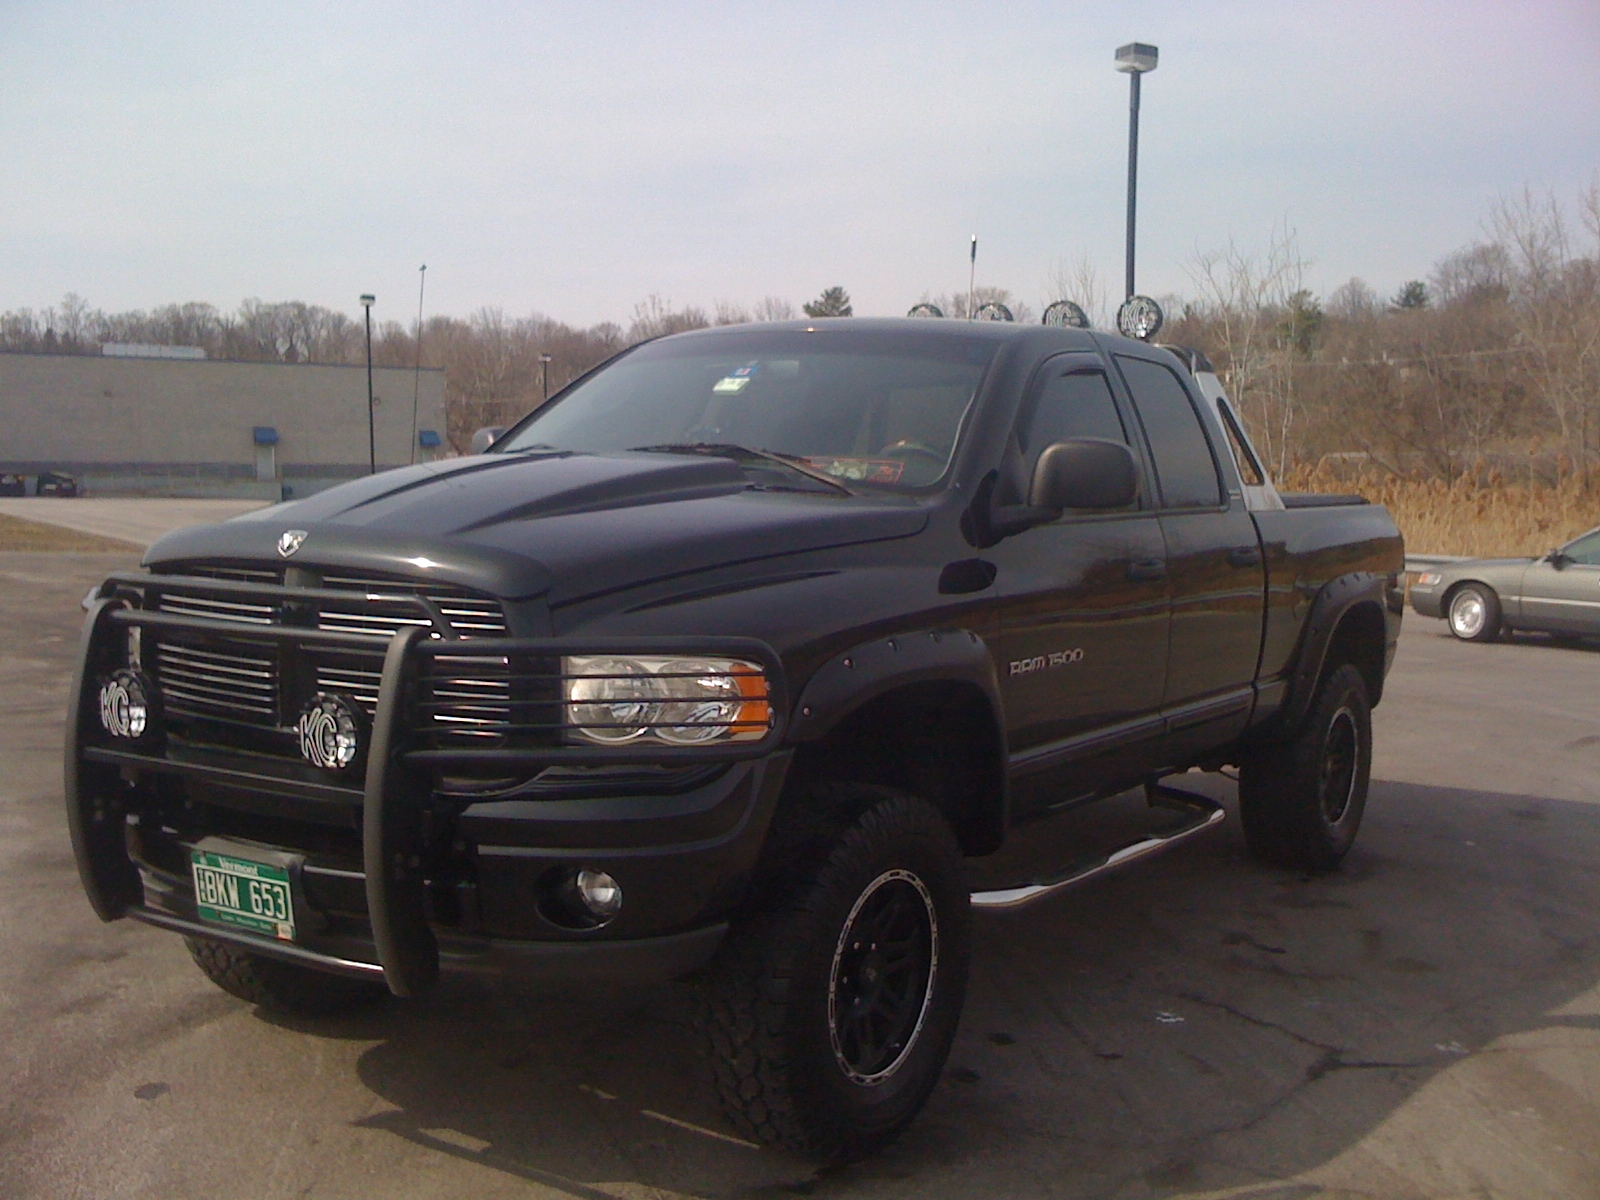 metalwolf69 2002 dodge ram 1500 quad cab specs photos modification info at cardomain. Black Bedroom Furniture Sets. Home Design Ideas